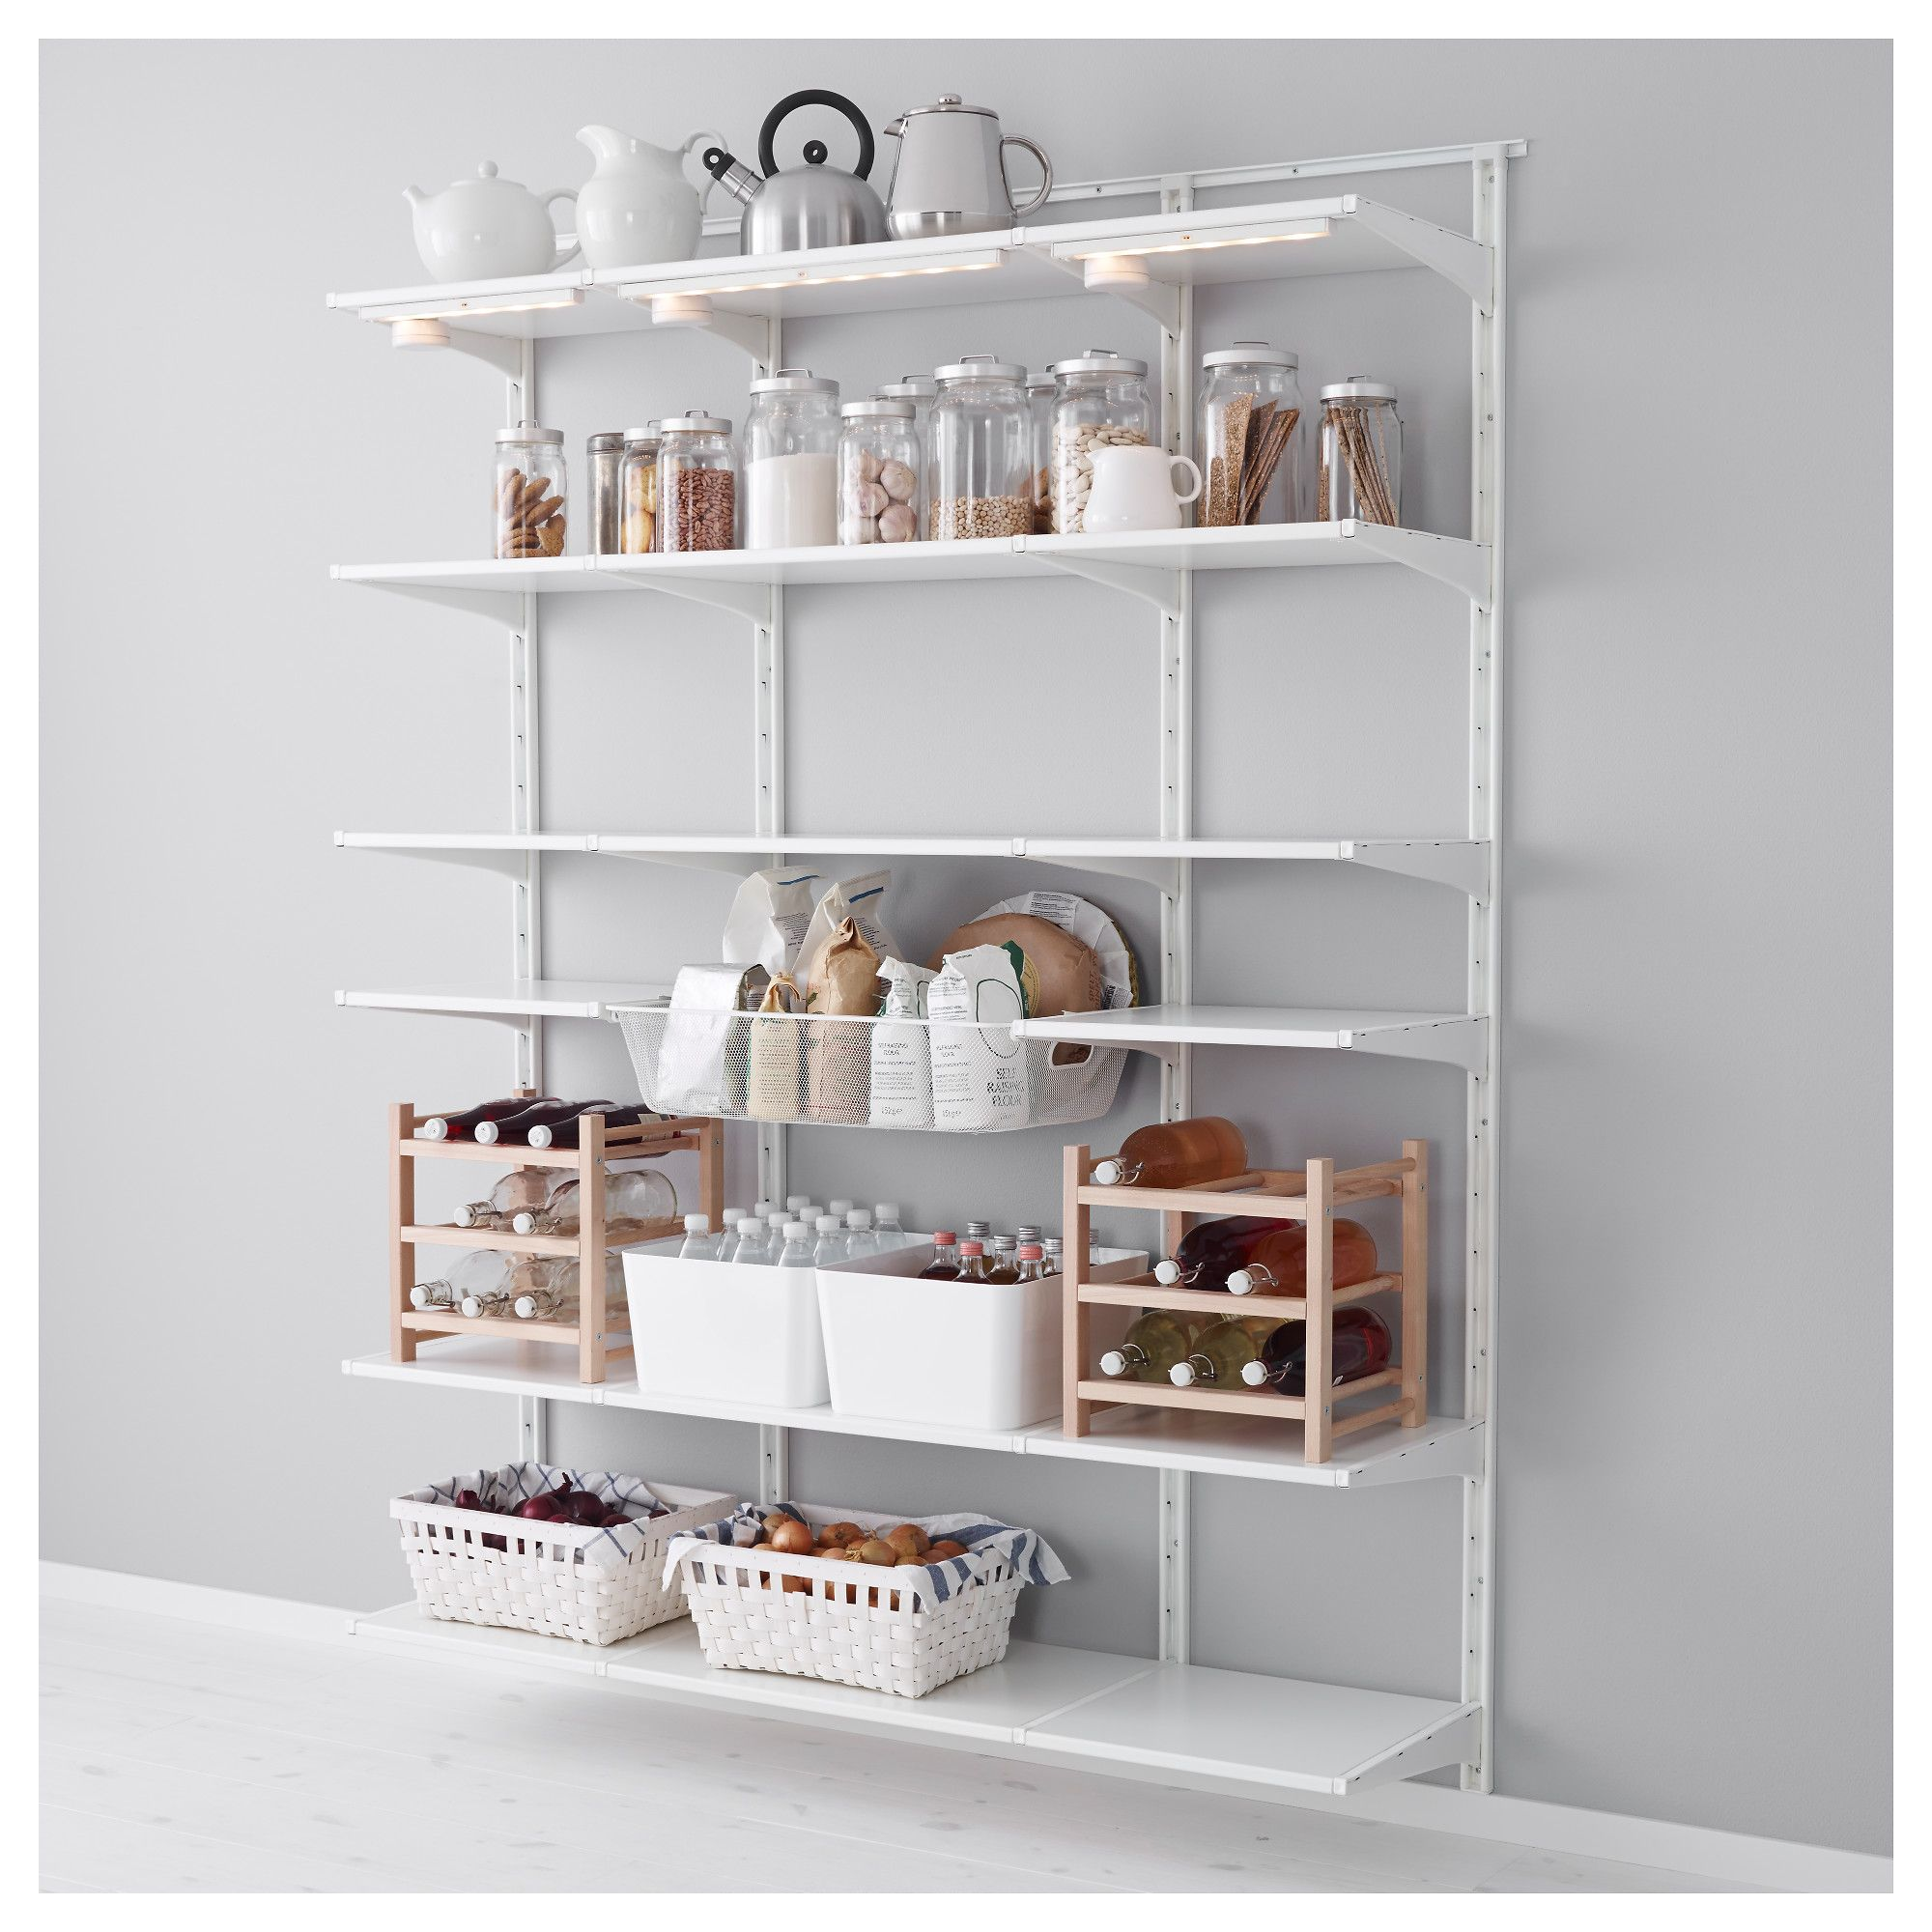 Ikea Algot Küche Ikea Algot Wall Upright Shelf And Basket The Parts In The